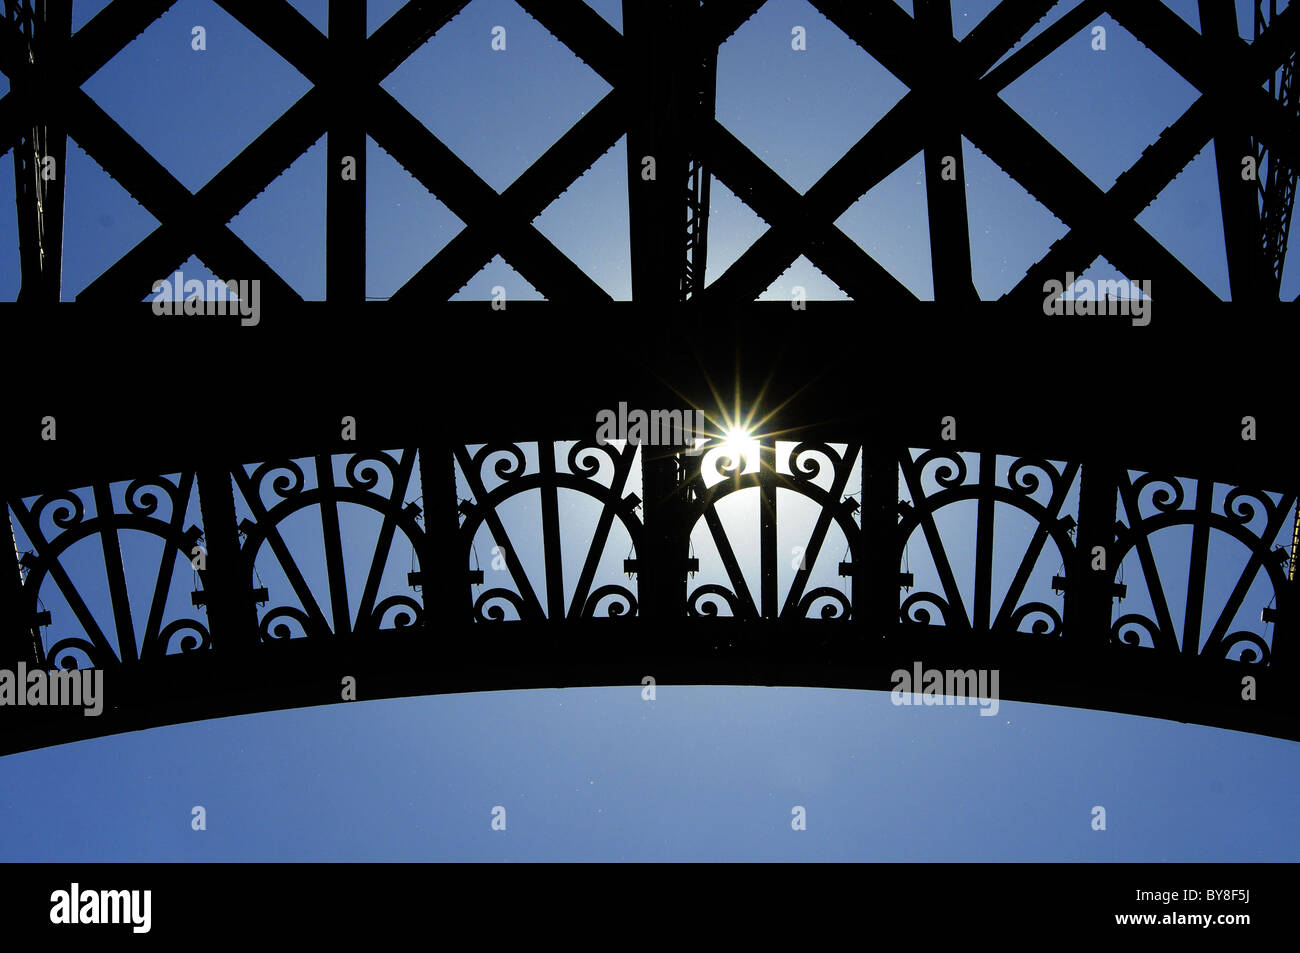 the-sun-shining-through-the-arch-of-the-eiffel-tower-in-paris-BY8F5J.jpg